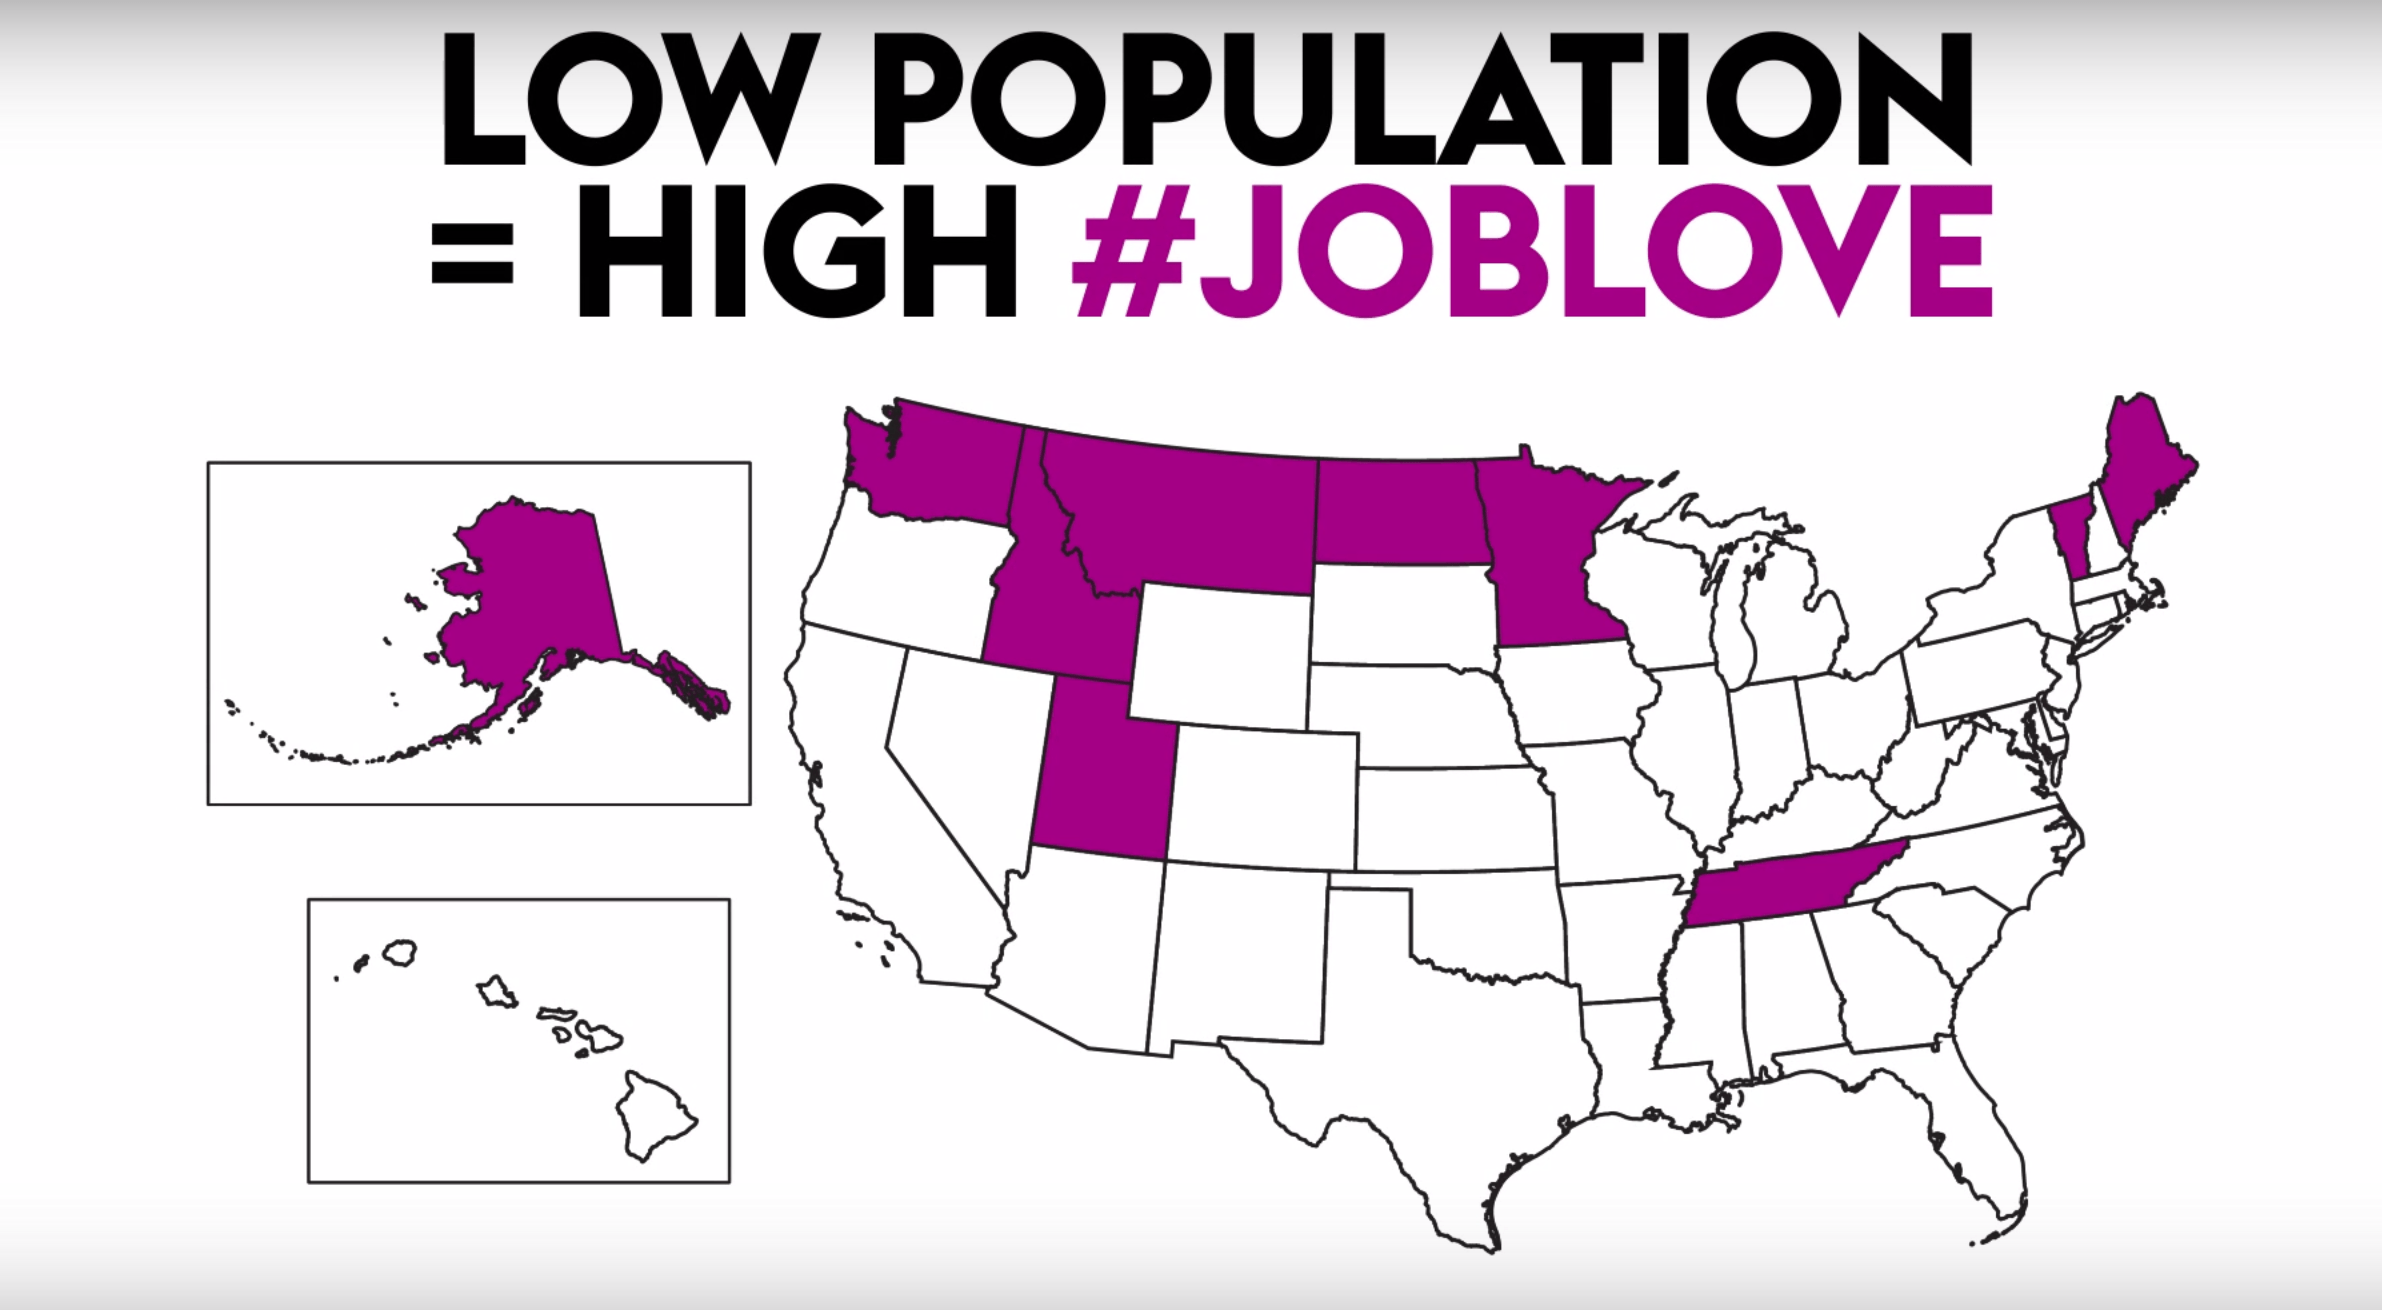 Find a job you love—it's easier than you think